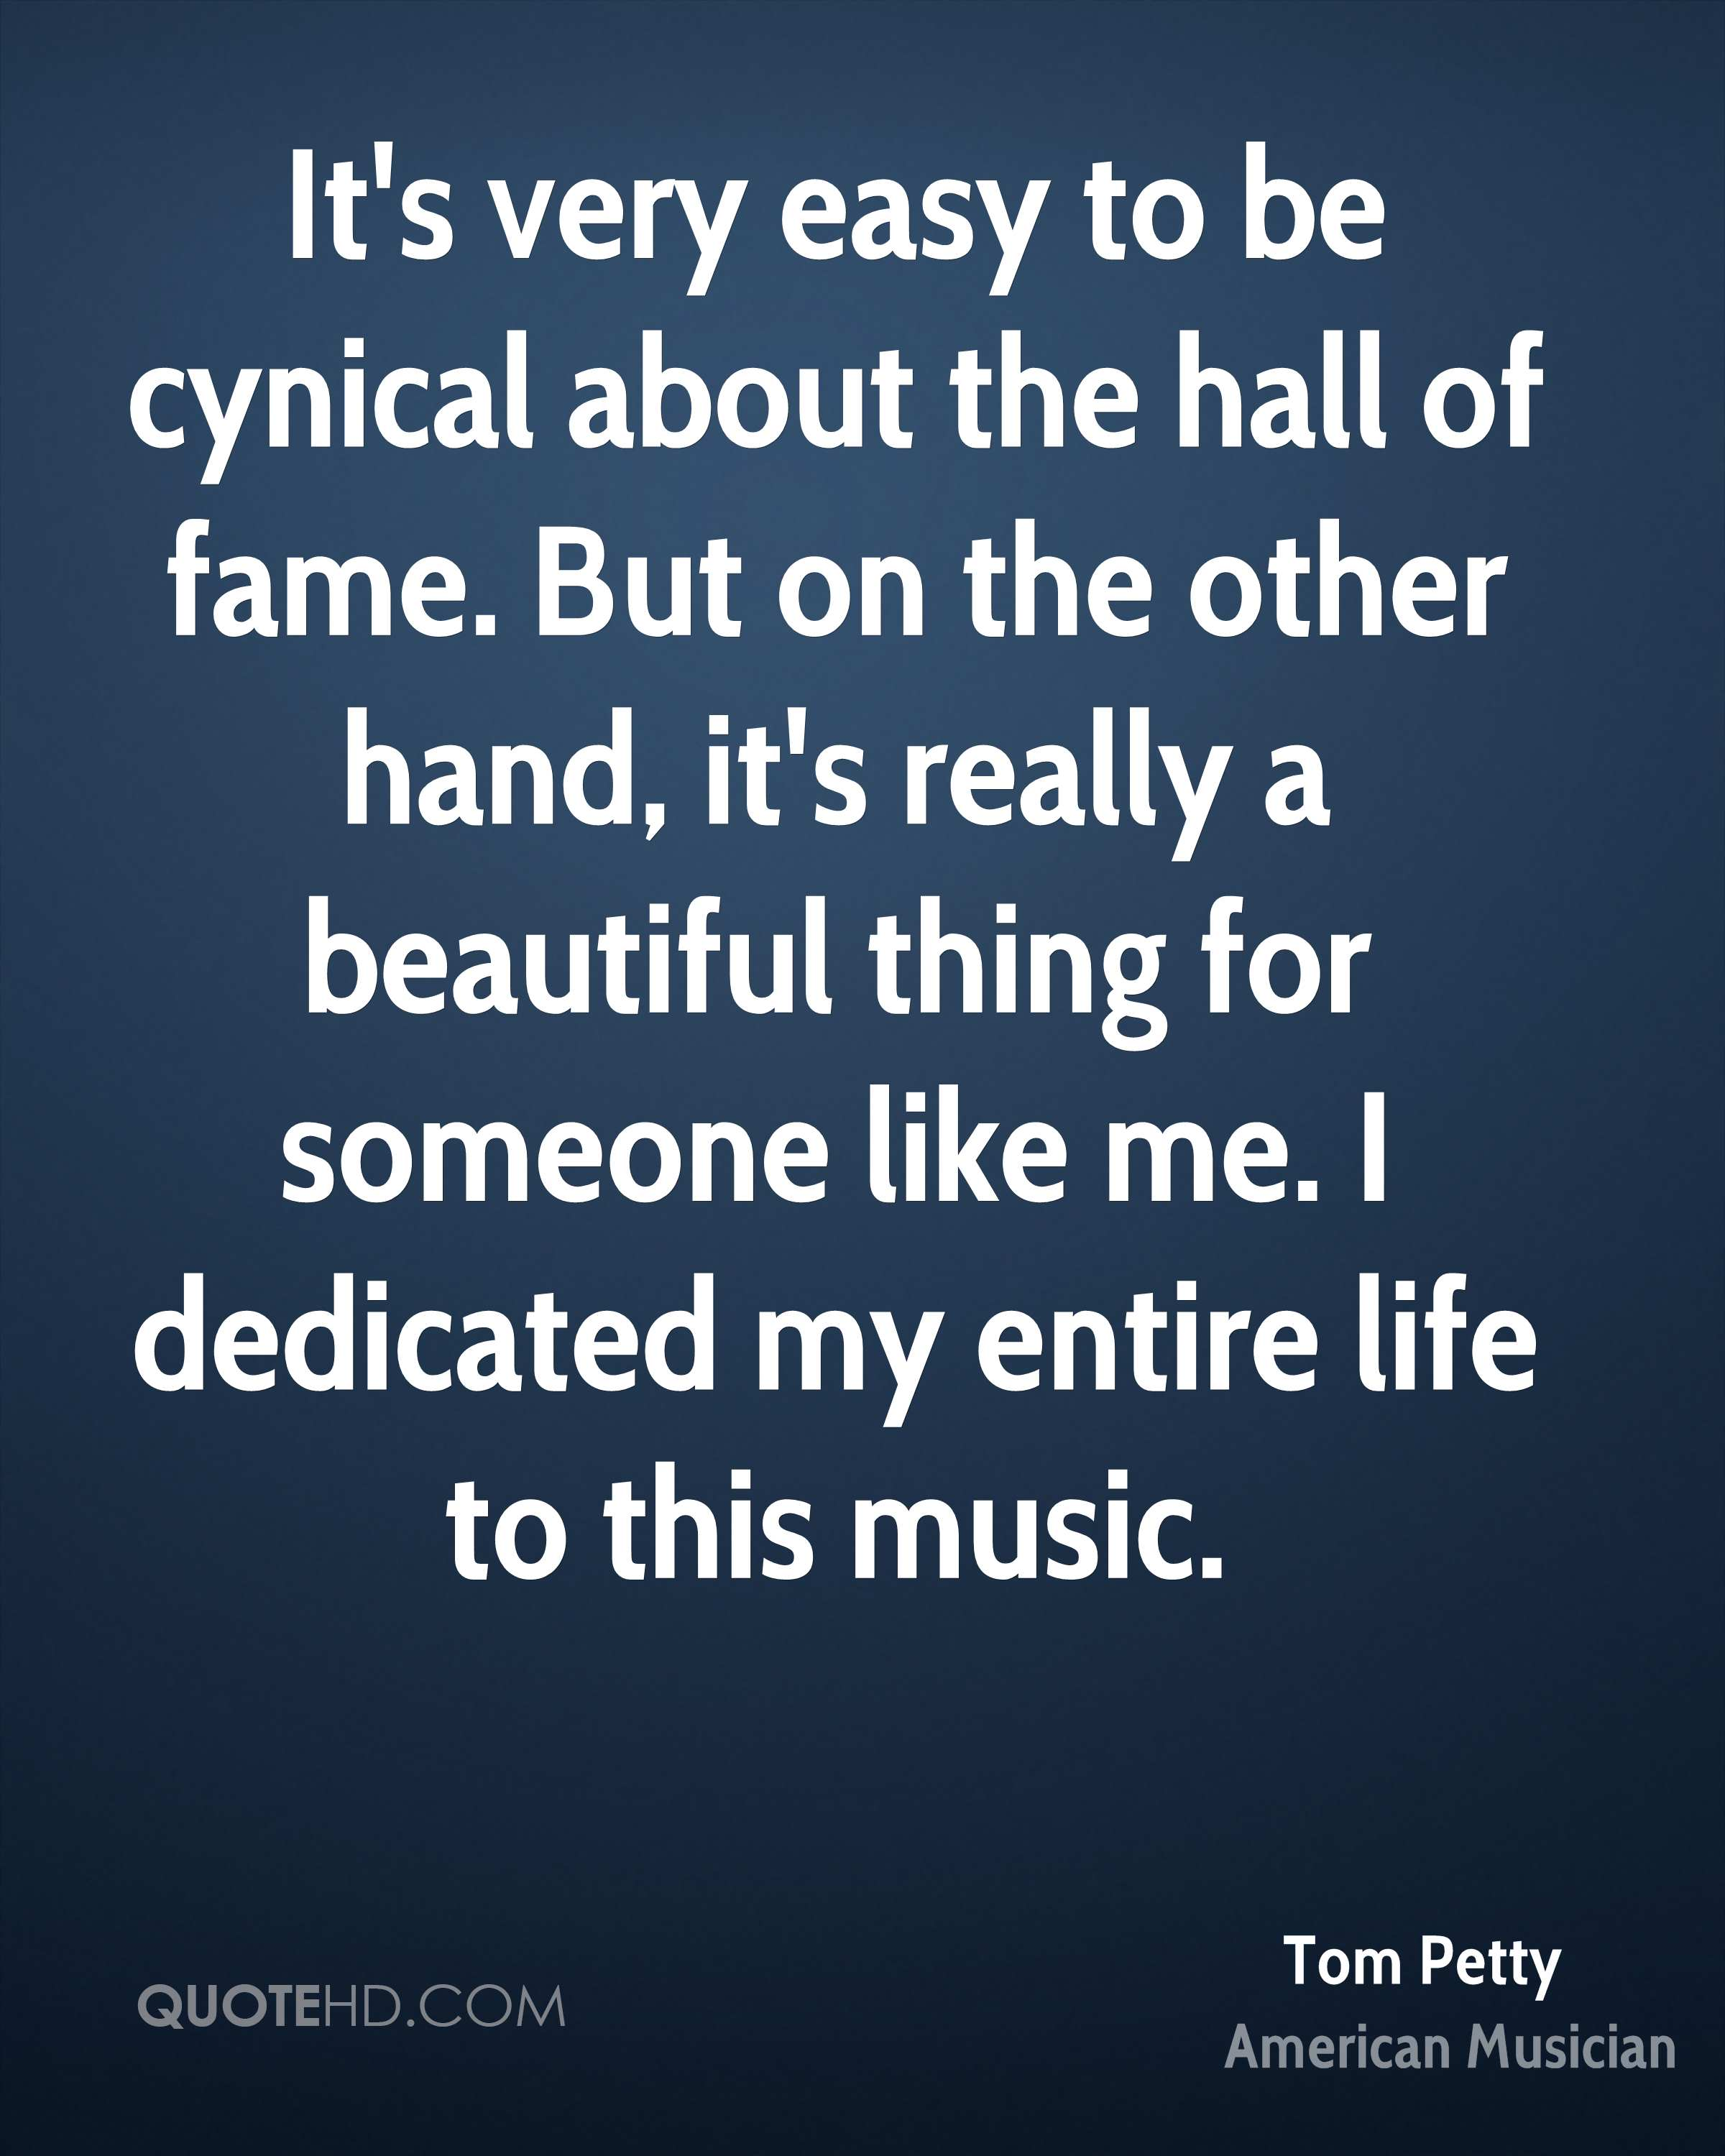 It's very easy to be cynical about the hall of fame. But on the other hand, it's really a beautiful thing for someone like me. I dedicated my entire life to this music.